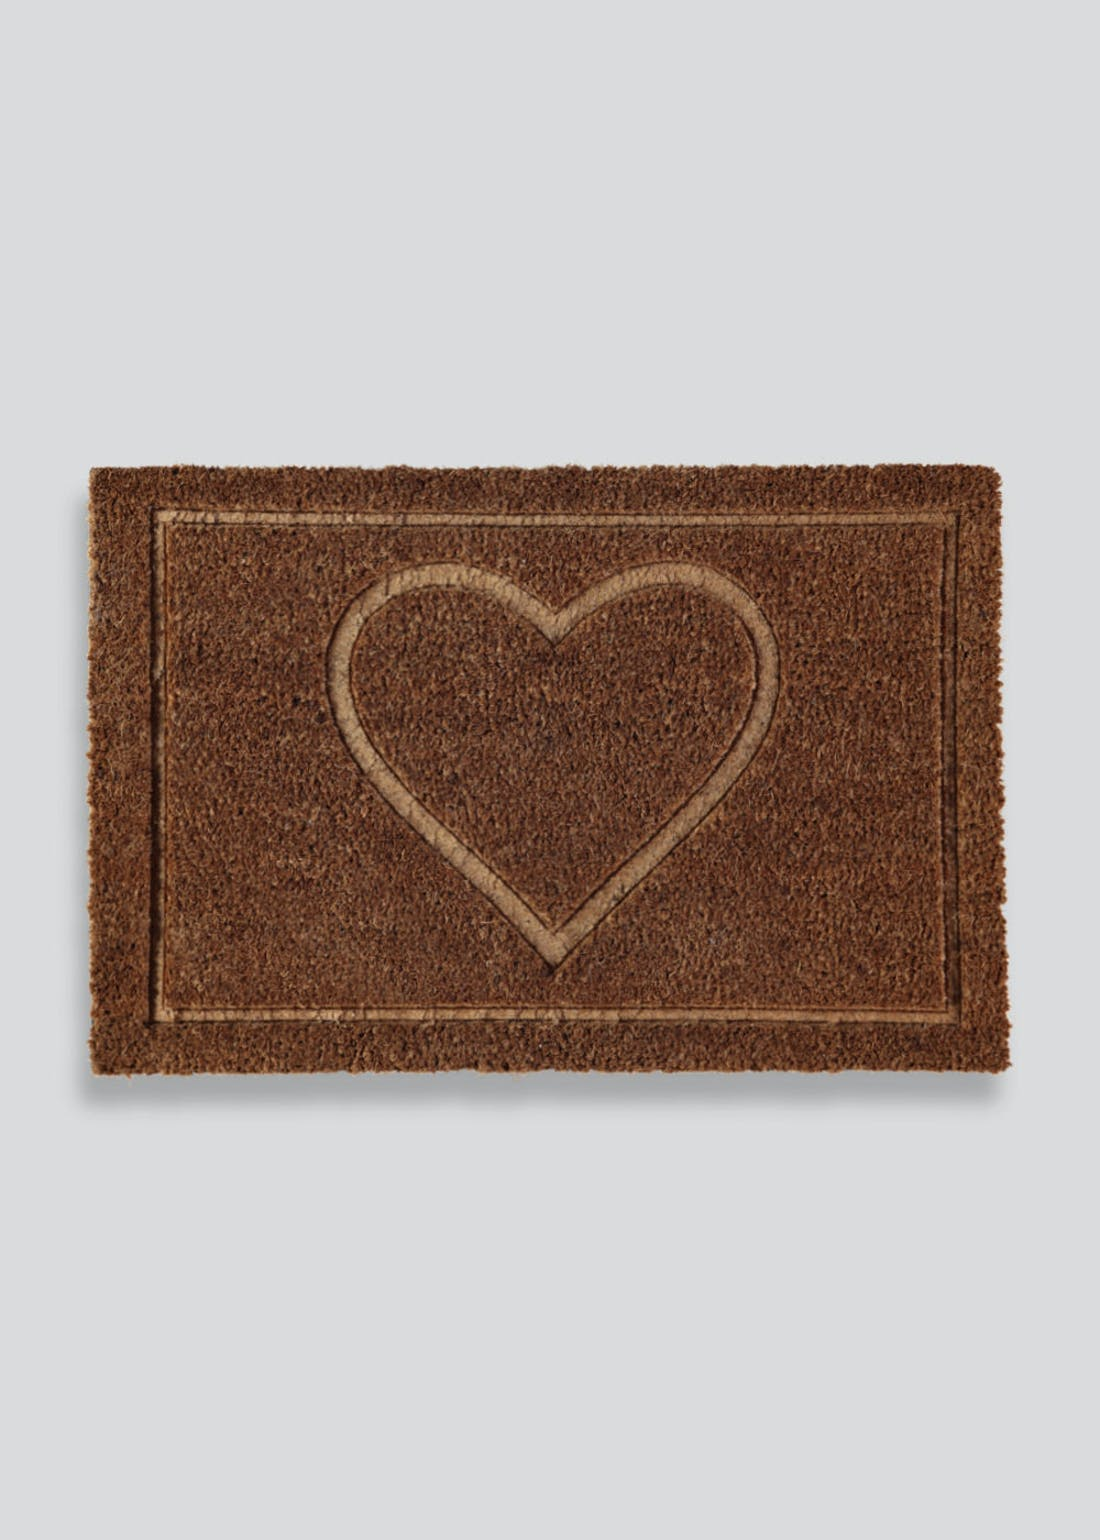 Embossed Heart Doormat (60cm x 40cm)